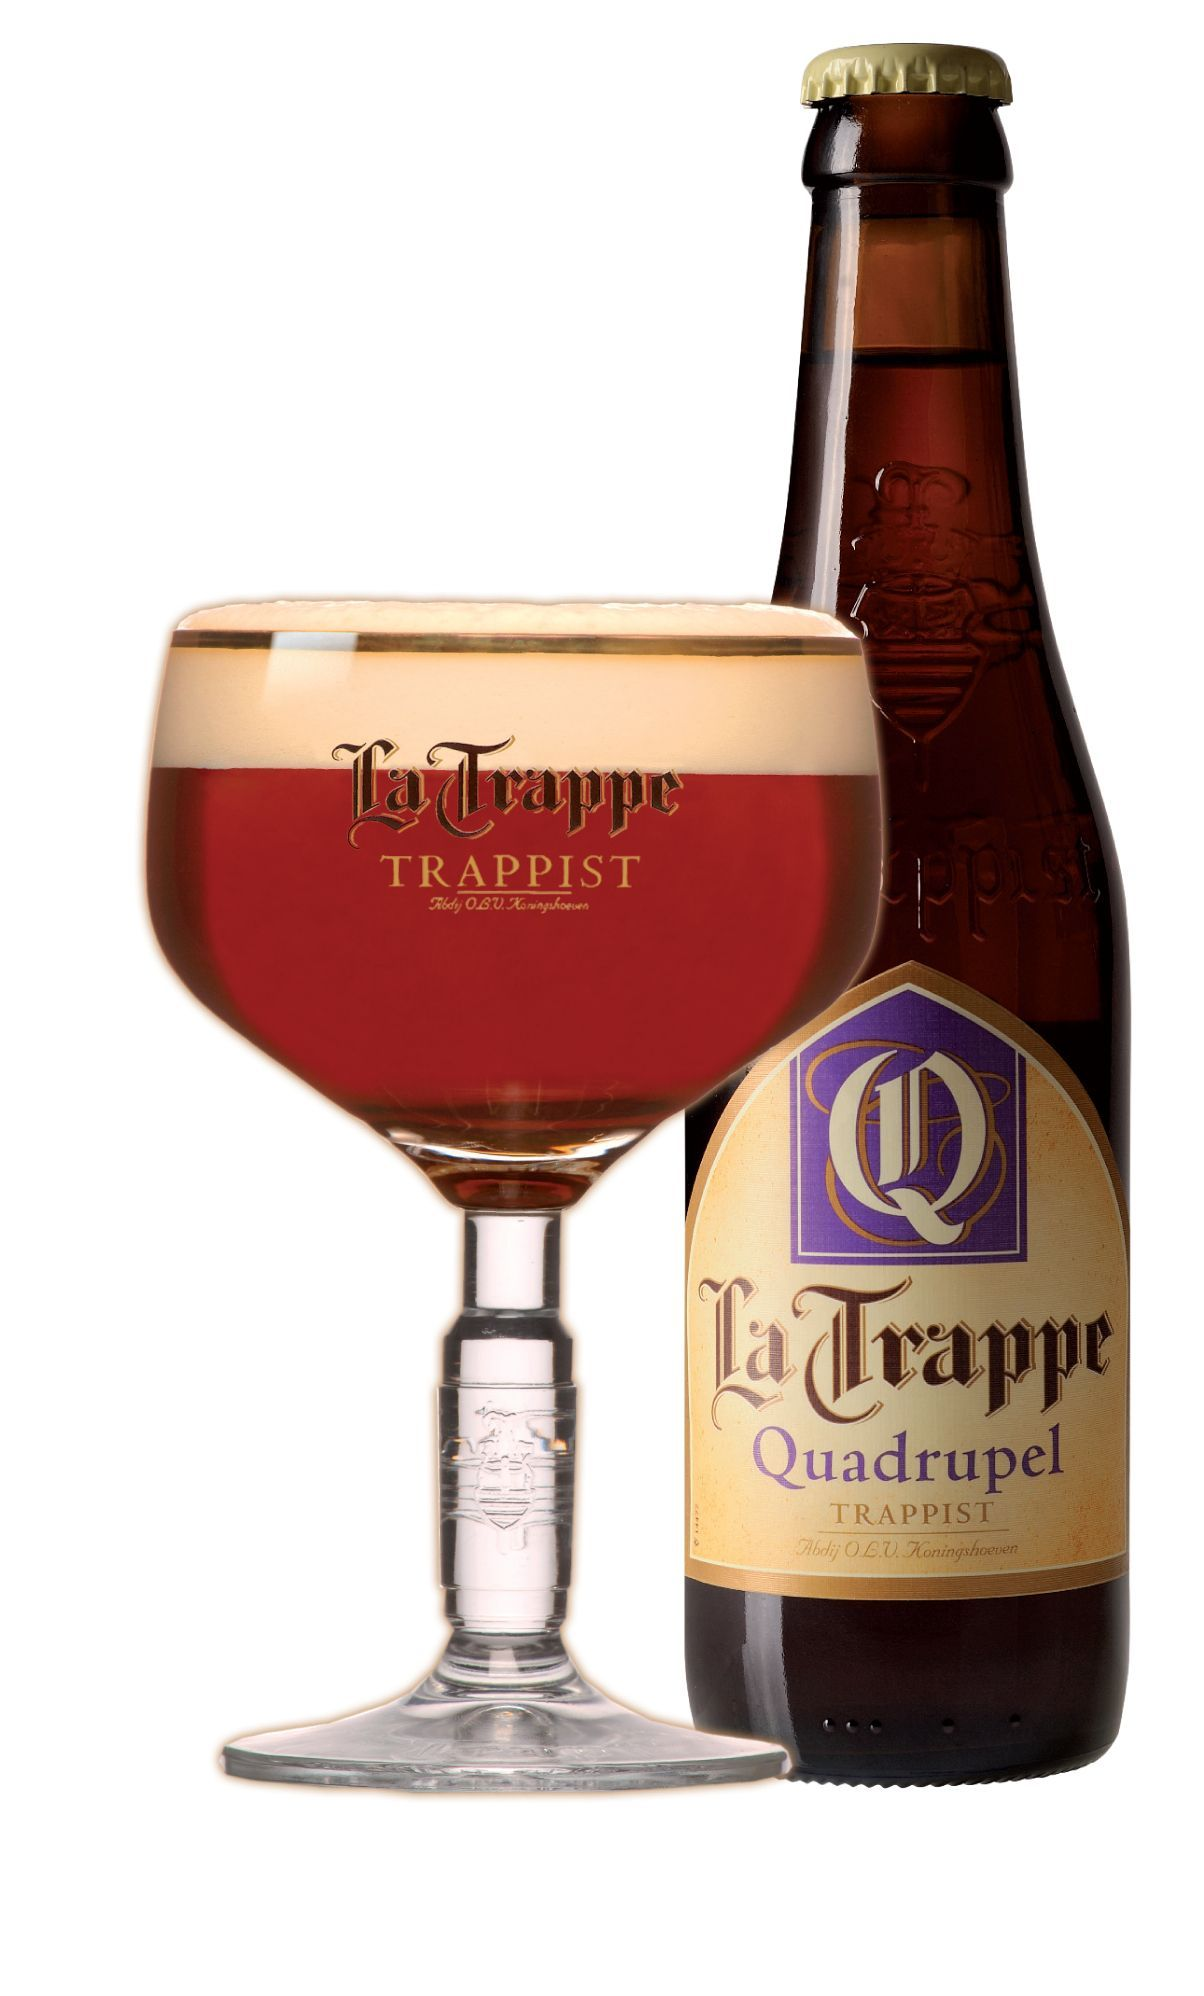 La Trappe Quadrupel Ale Quadrupel Is La Trappe S Heaviest Ale With A Stunning Amber Colour Its Warm And Intense Flavour Beer Brewing Beer Brands Craft Beer